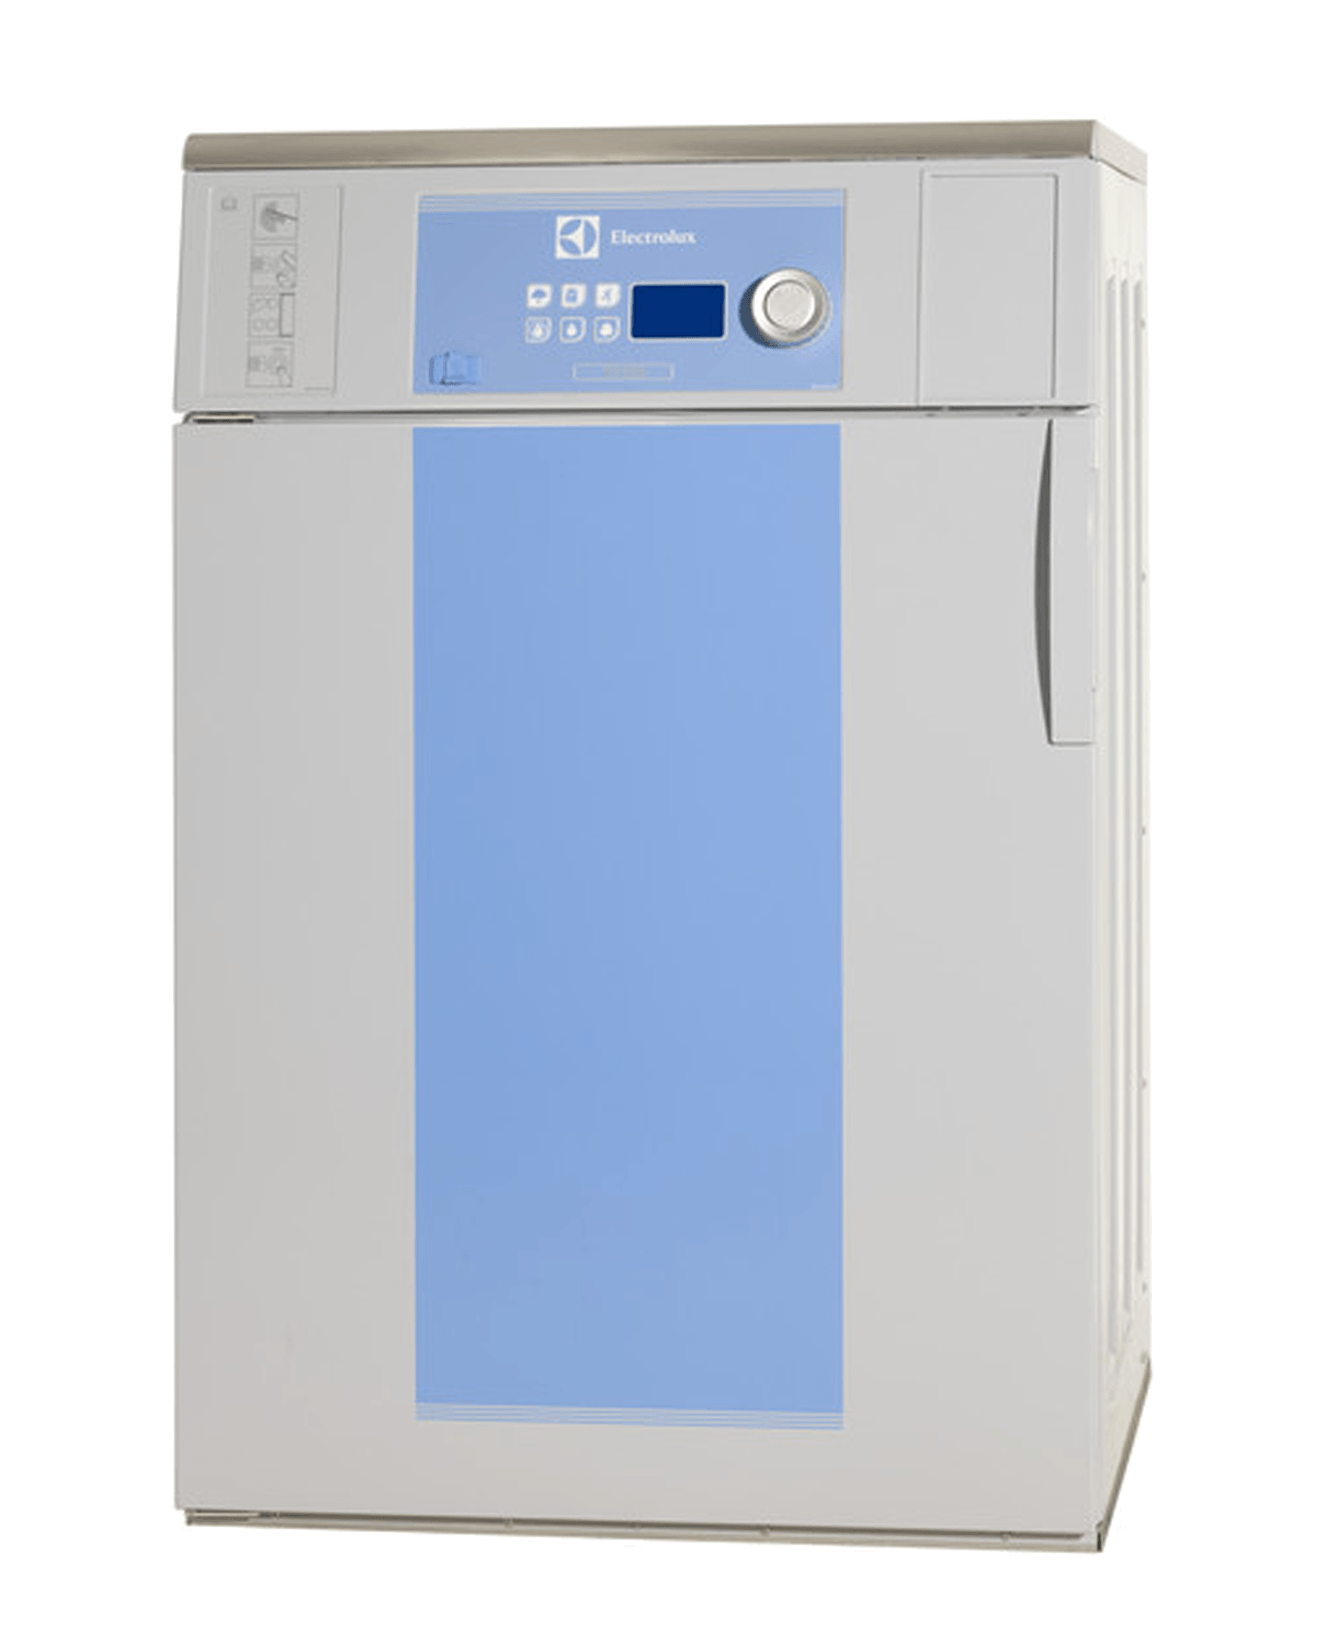 Electrolux Condenser Dryer Electrolux T5190 10kg The Opl Group